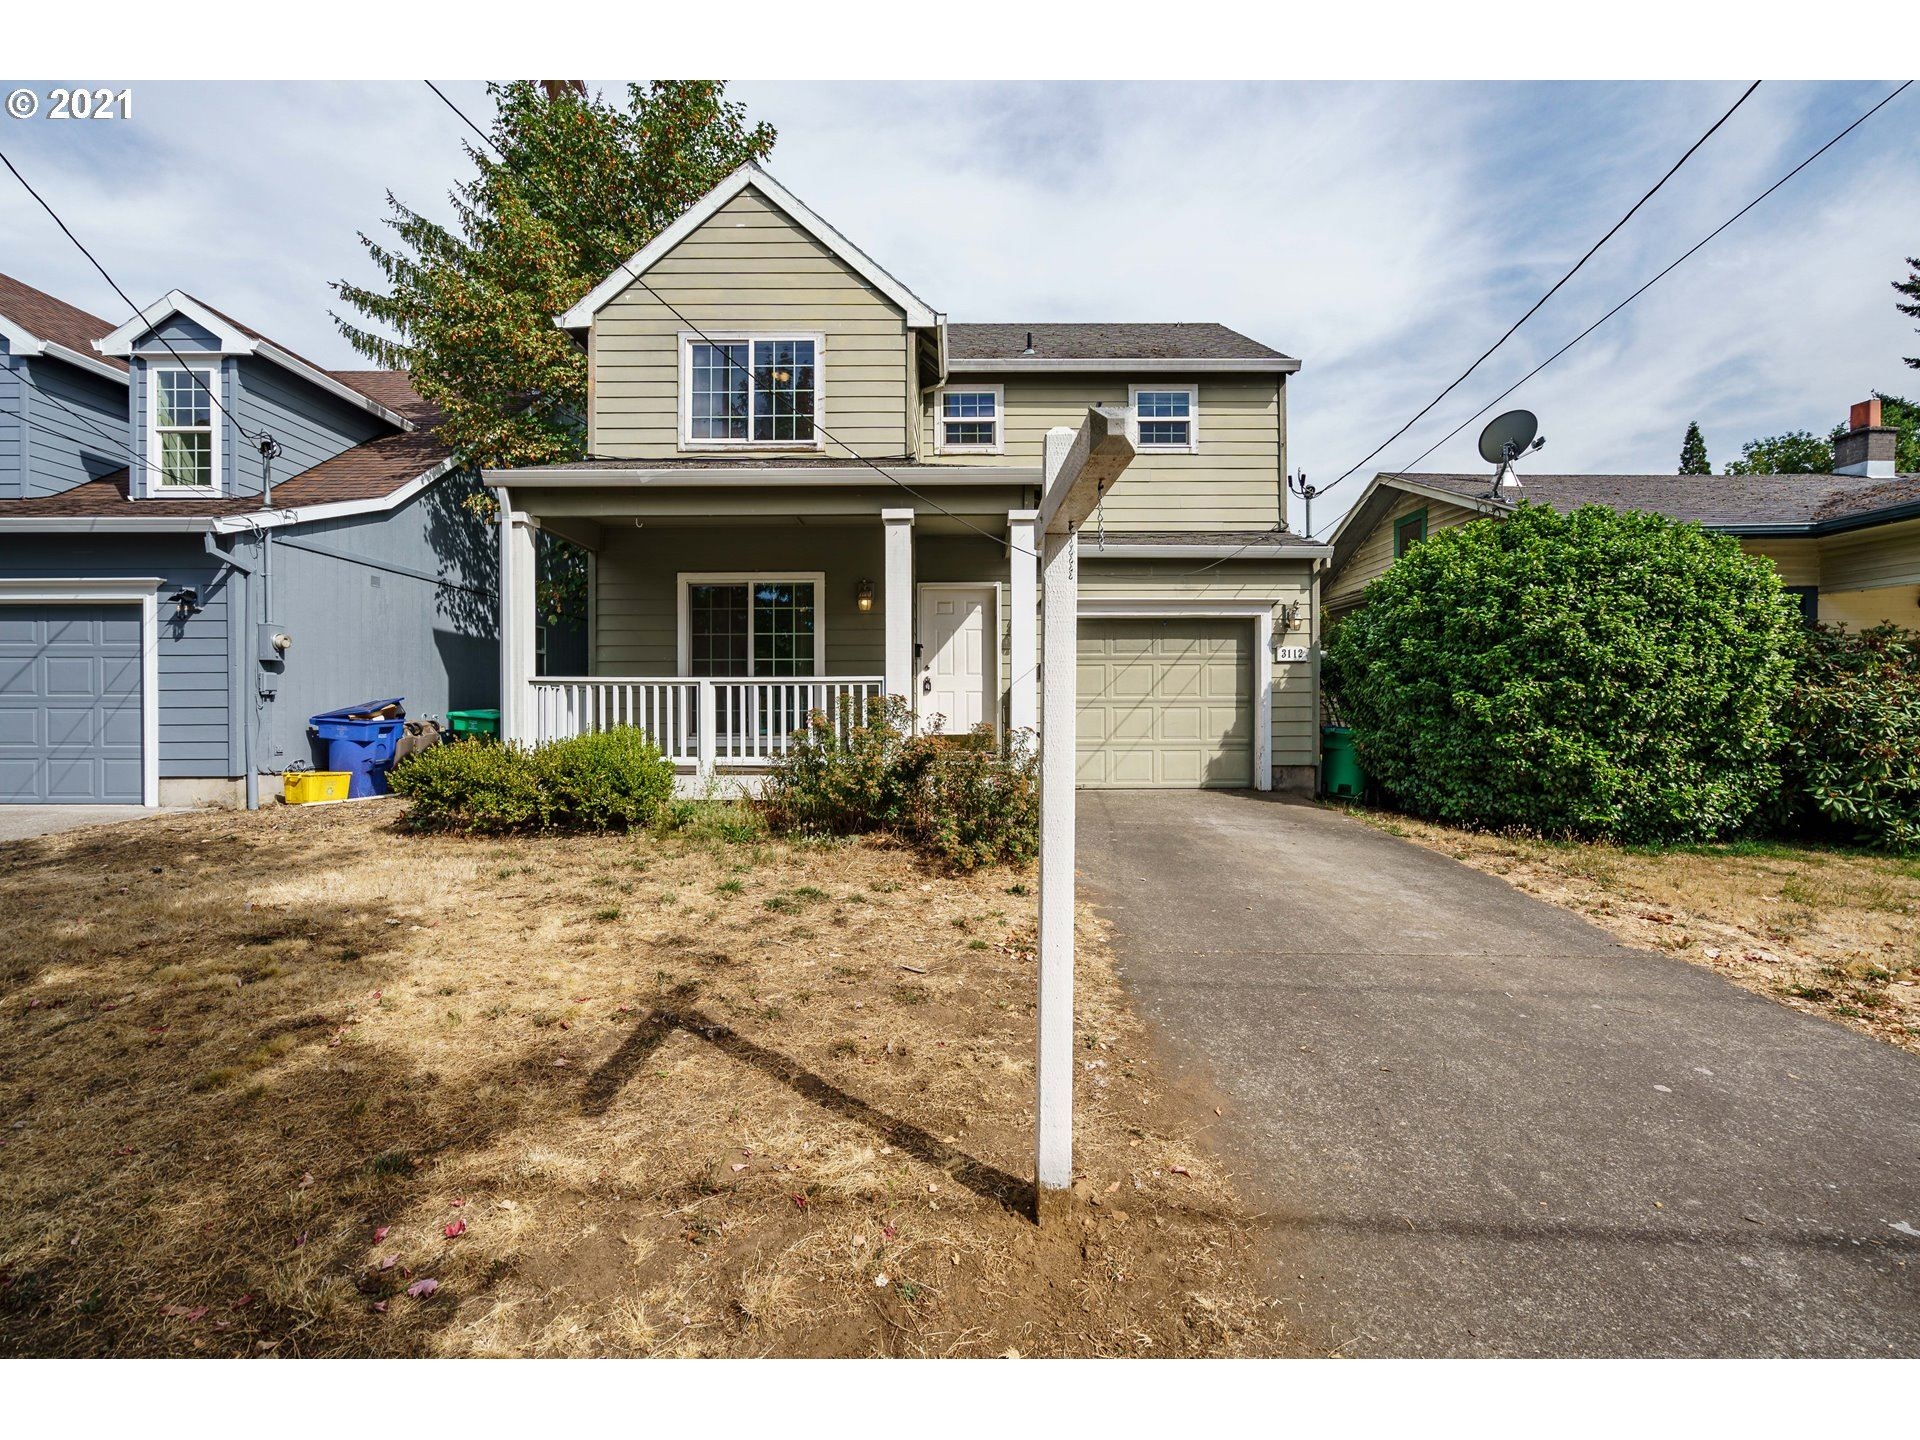 3112 SE 55TH AVE, Portland, OR 97206 - MLS#: 21080184